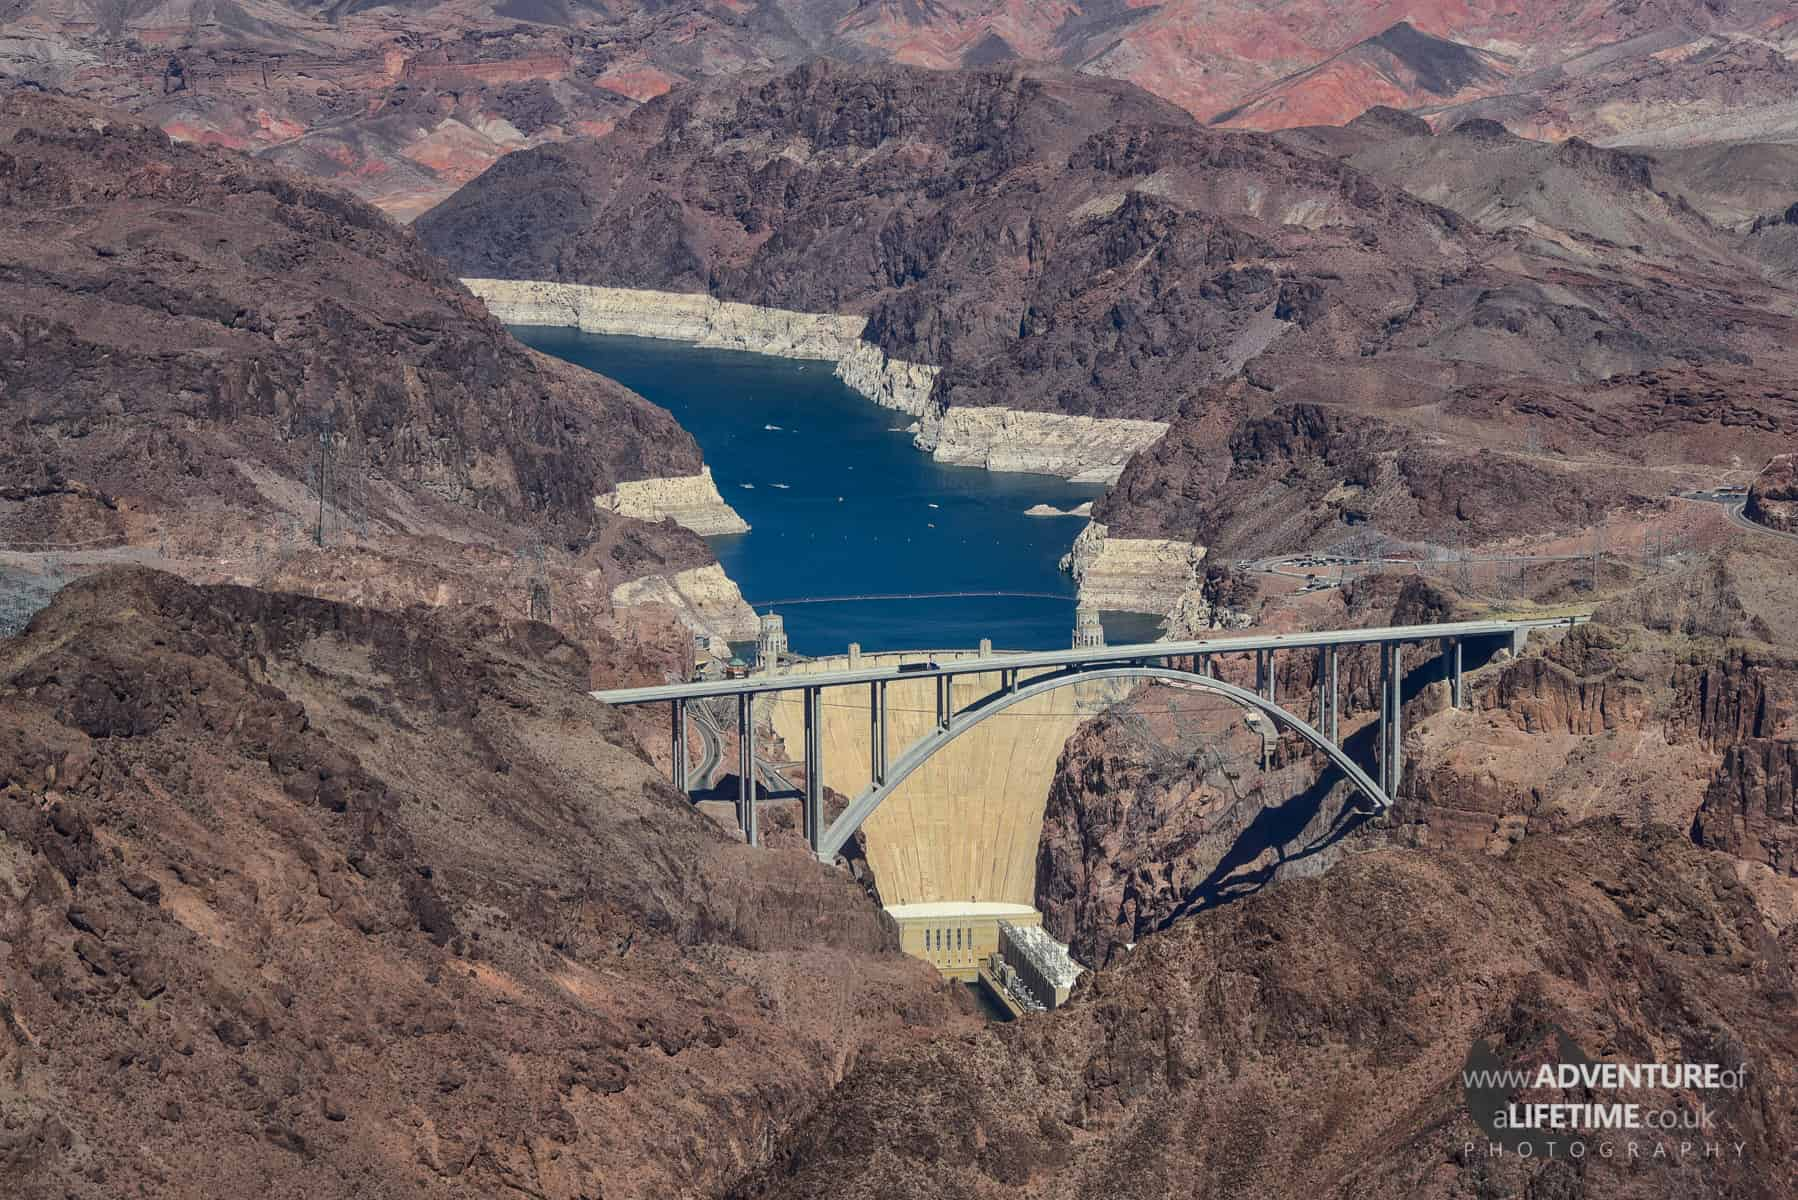 Hoover Dam from the helicopter